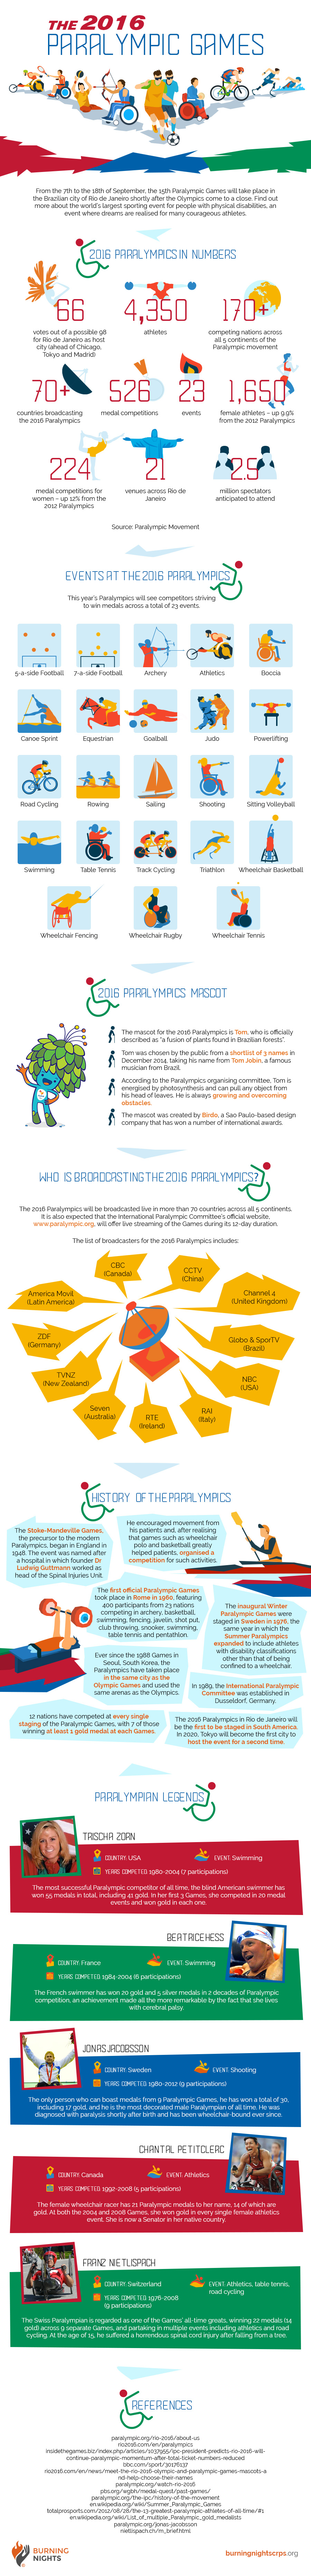 Paralympic Games - IG